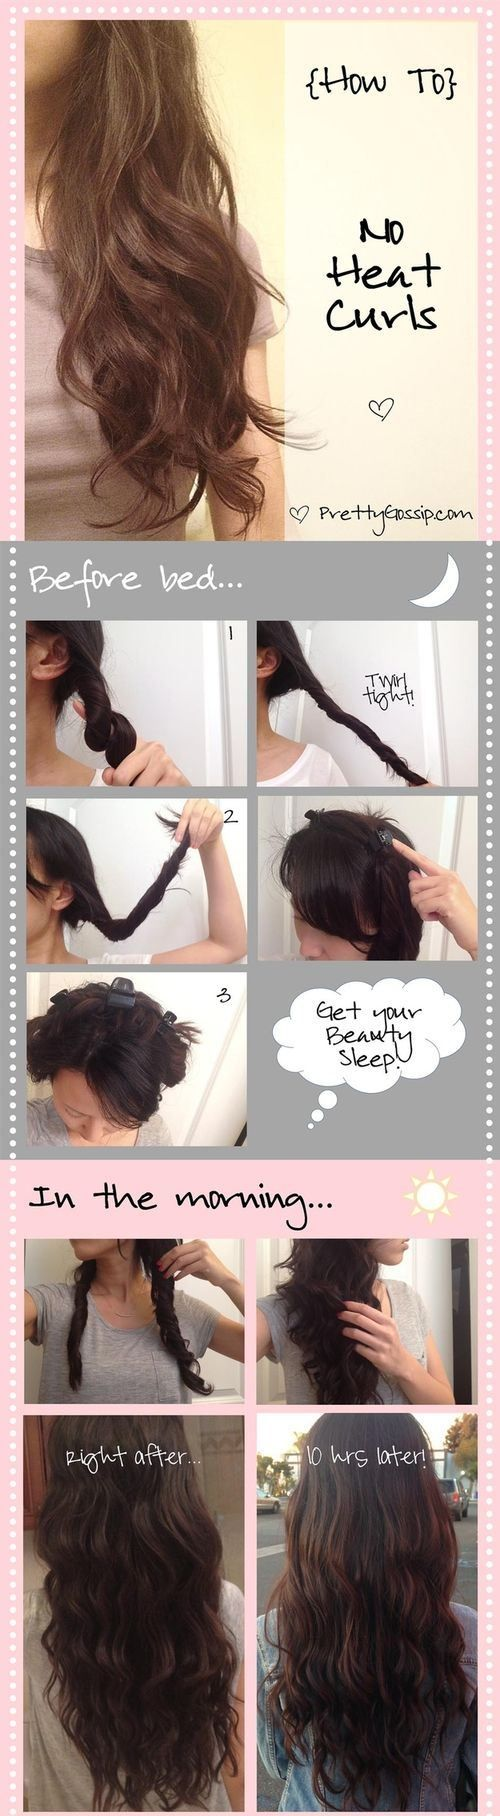 I'm a strong believer in this technique! I do mine slightly differently, but the first step to healthy hair is cutting out the heating tools.